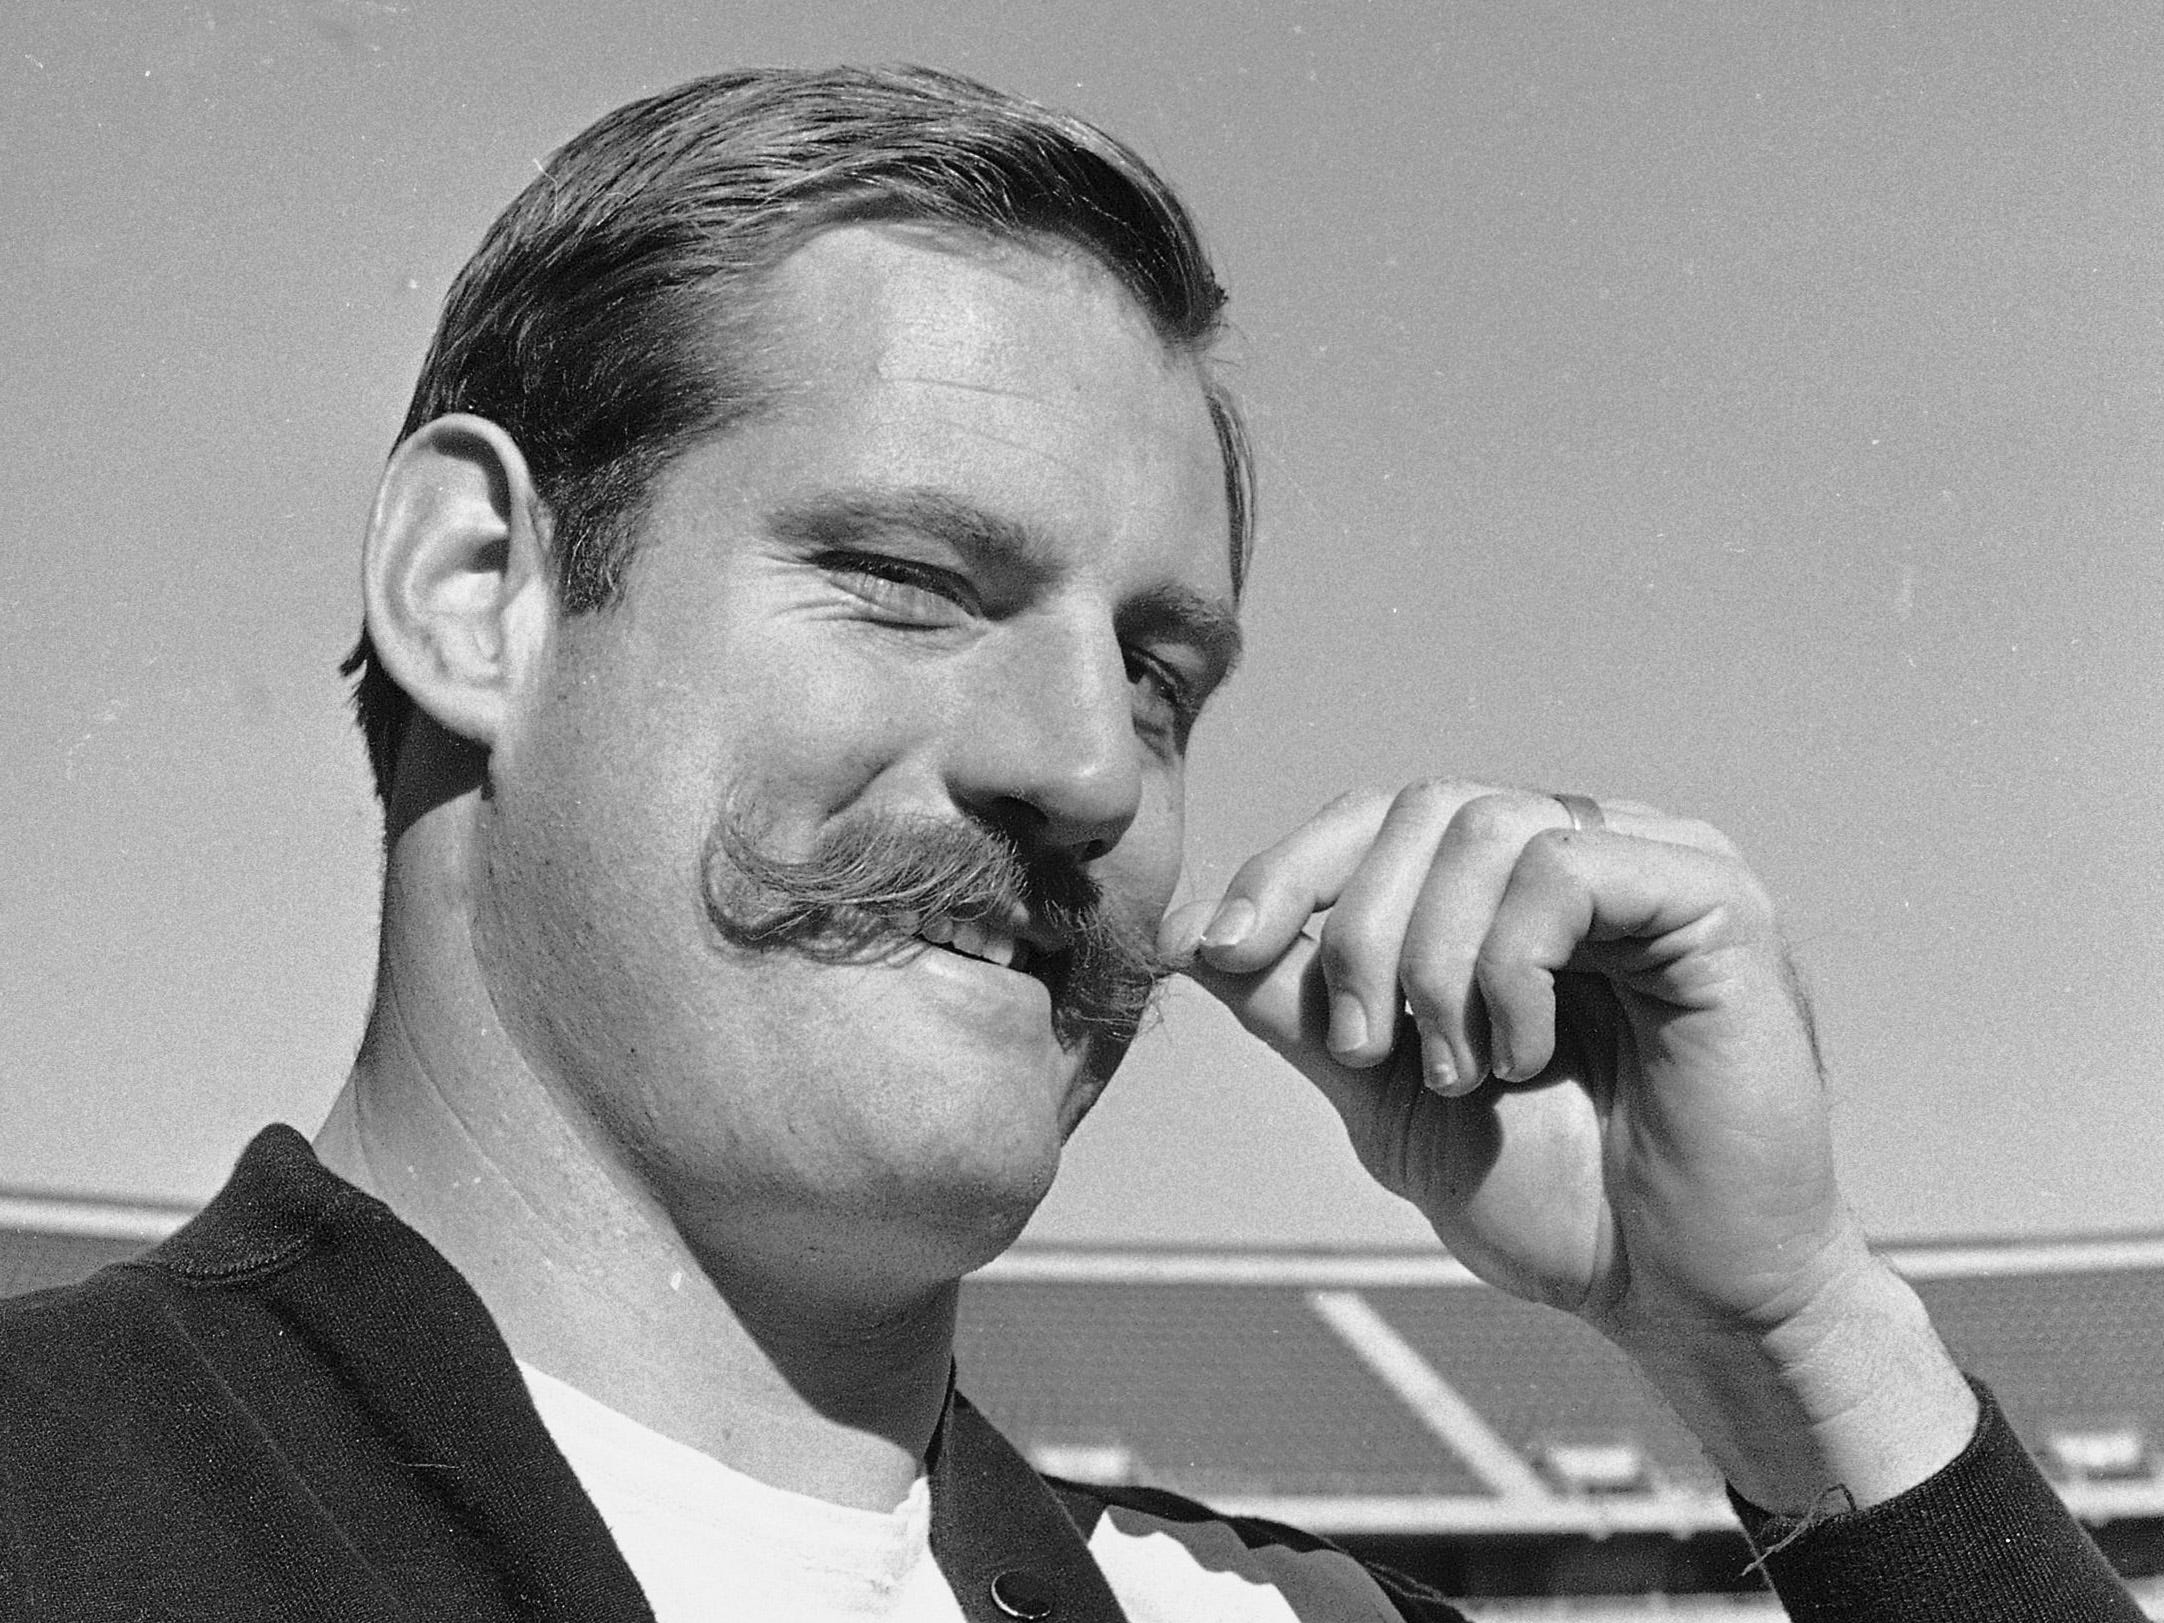 Ben Davidson - Don't let that handsome  handlebar mustachioed man fool you. He set the tone for the renegade Raiders in the 1960s. Famously fought with Chiefs after a late hit to Len Dawson.